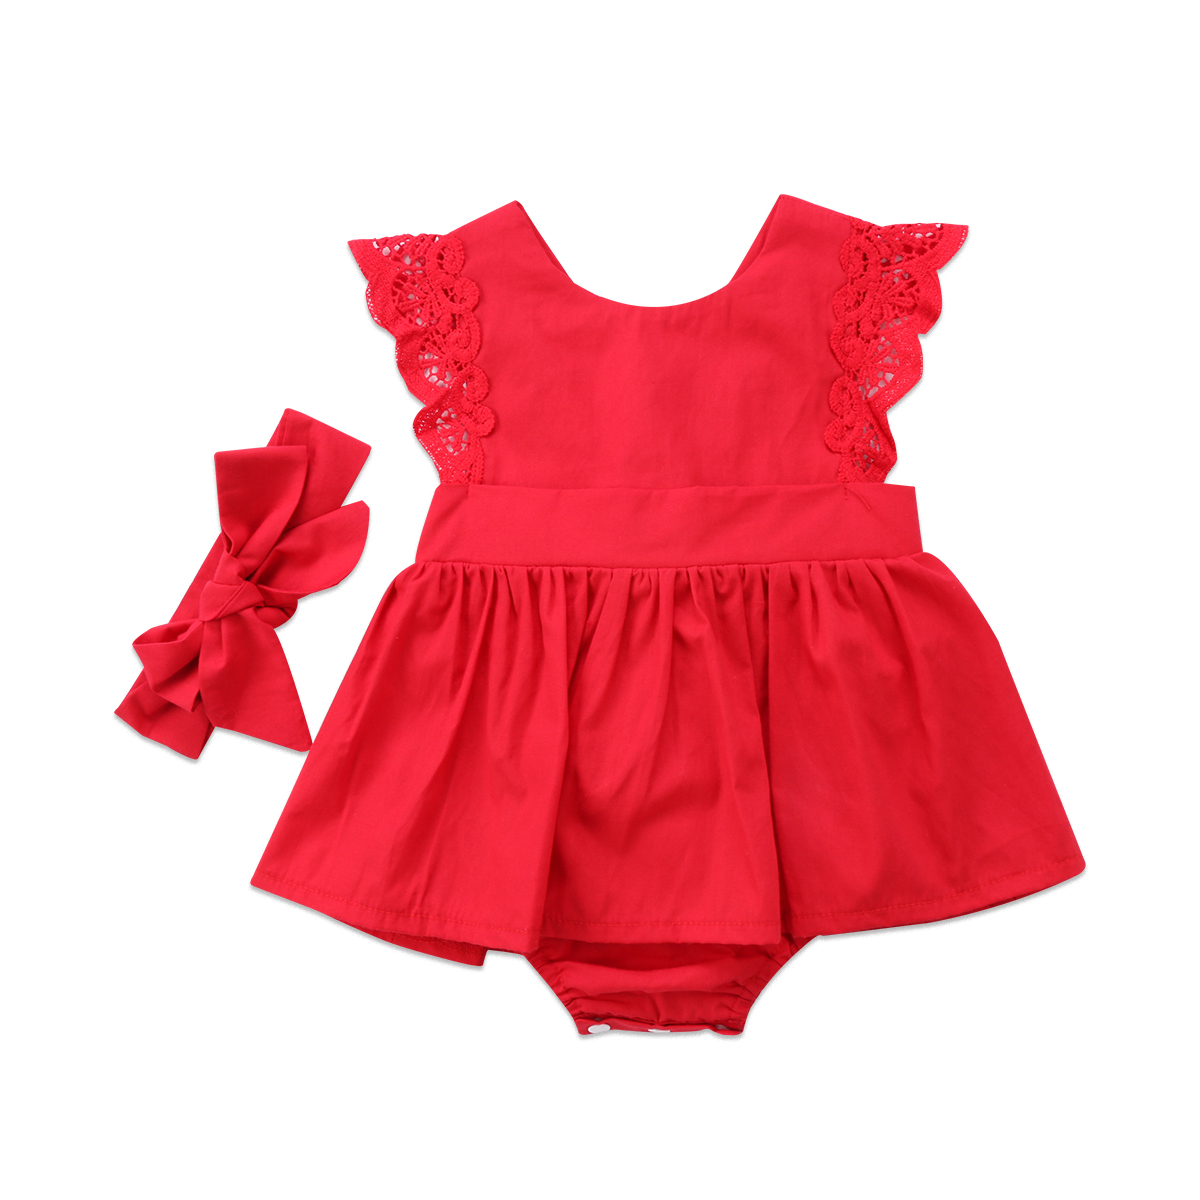 Baby Christmas Clothing Newborn Baby Girls Kids Xmas Lace Romper Dress Party Dresses Jumpsuits Costume 0-2T fashion newborn baby girls christmas ruffle red lace romper dress sister princess kids xmas party dresses cotton costume romper